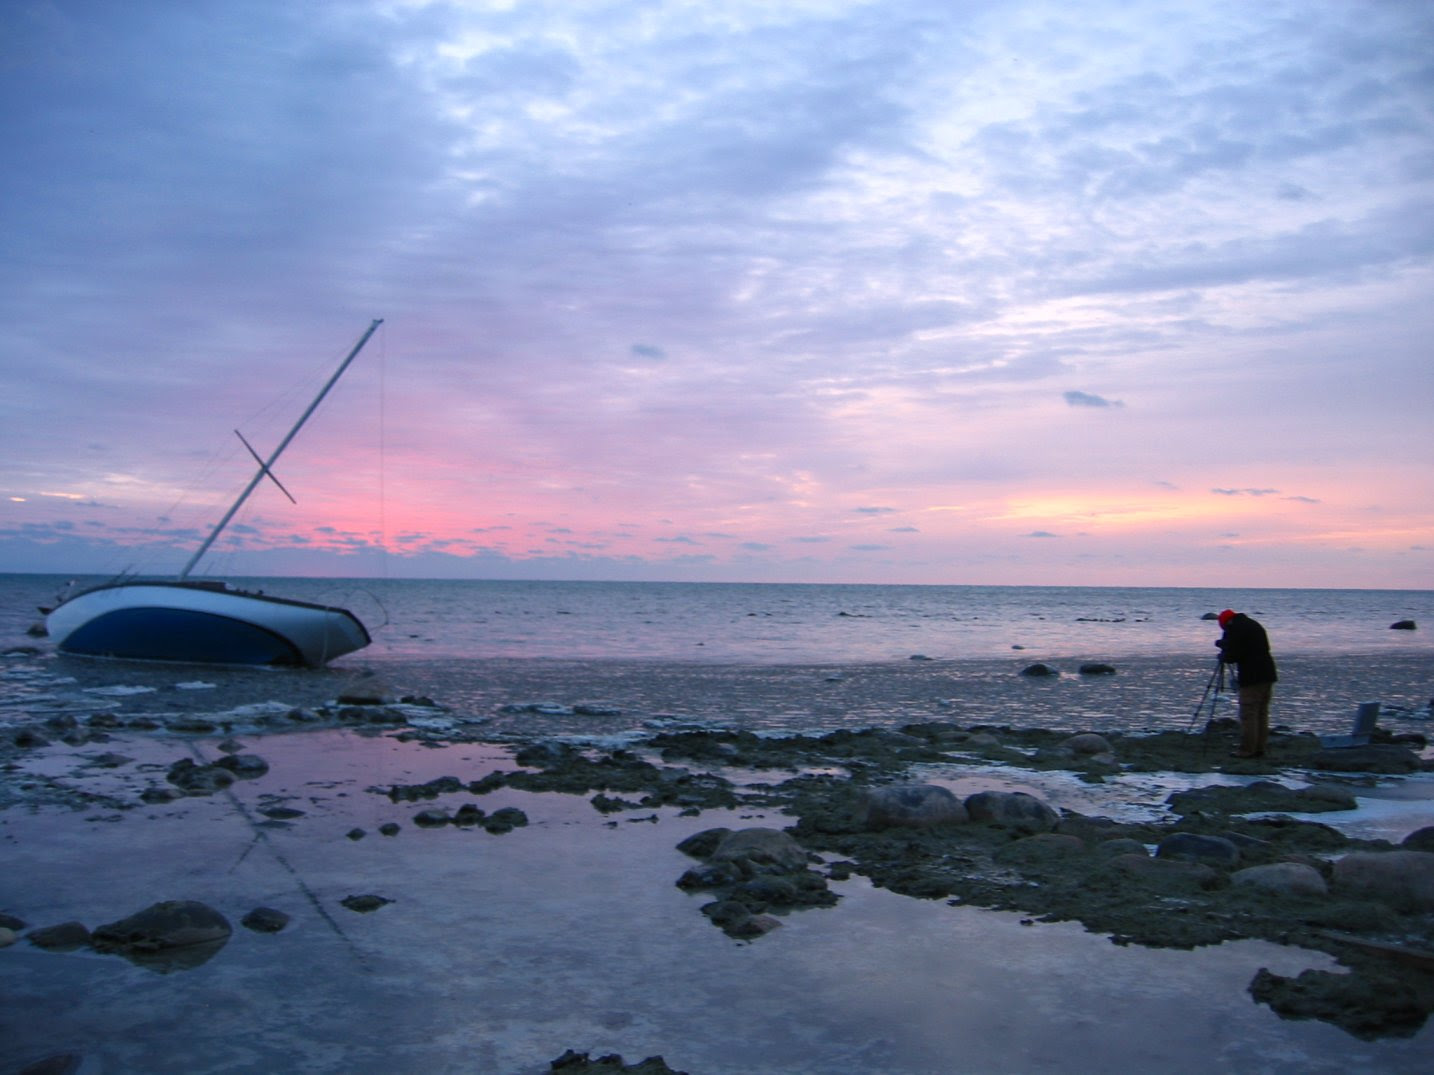 Photagrpaher taking picture of grounded Milwaukee sailboat at sunrise - 12-01-2007 - soul-amp.com